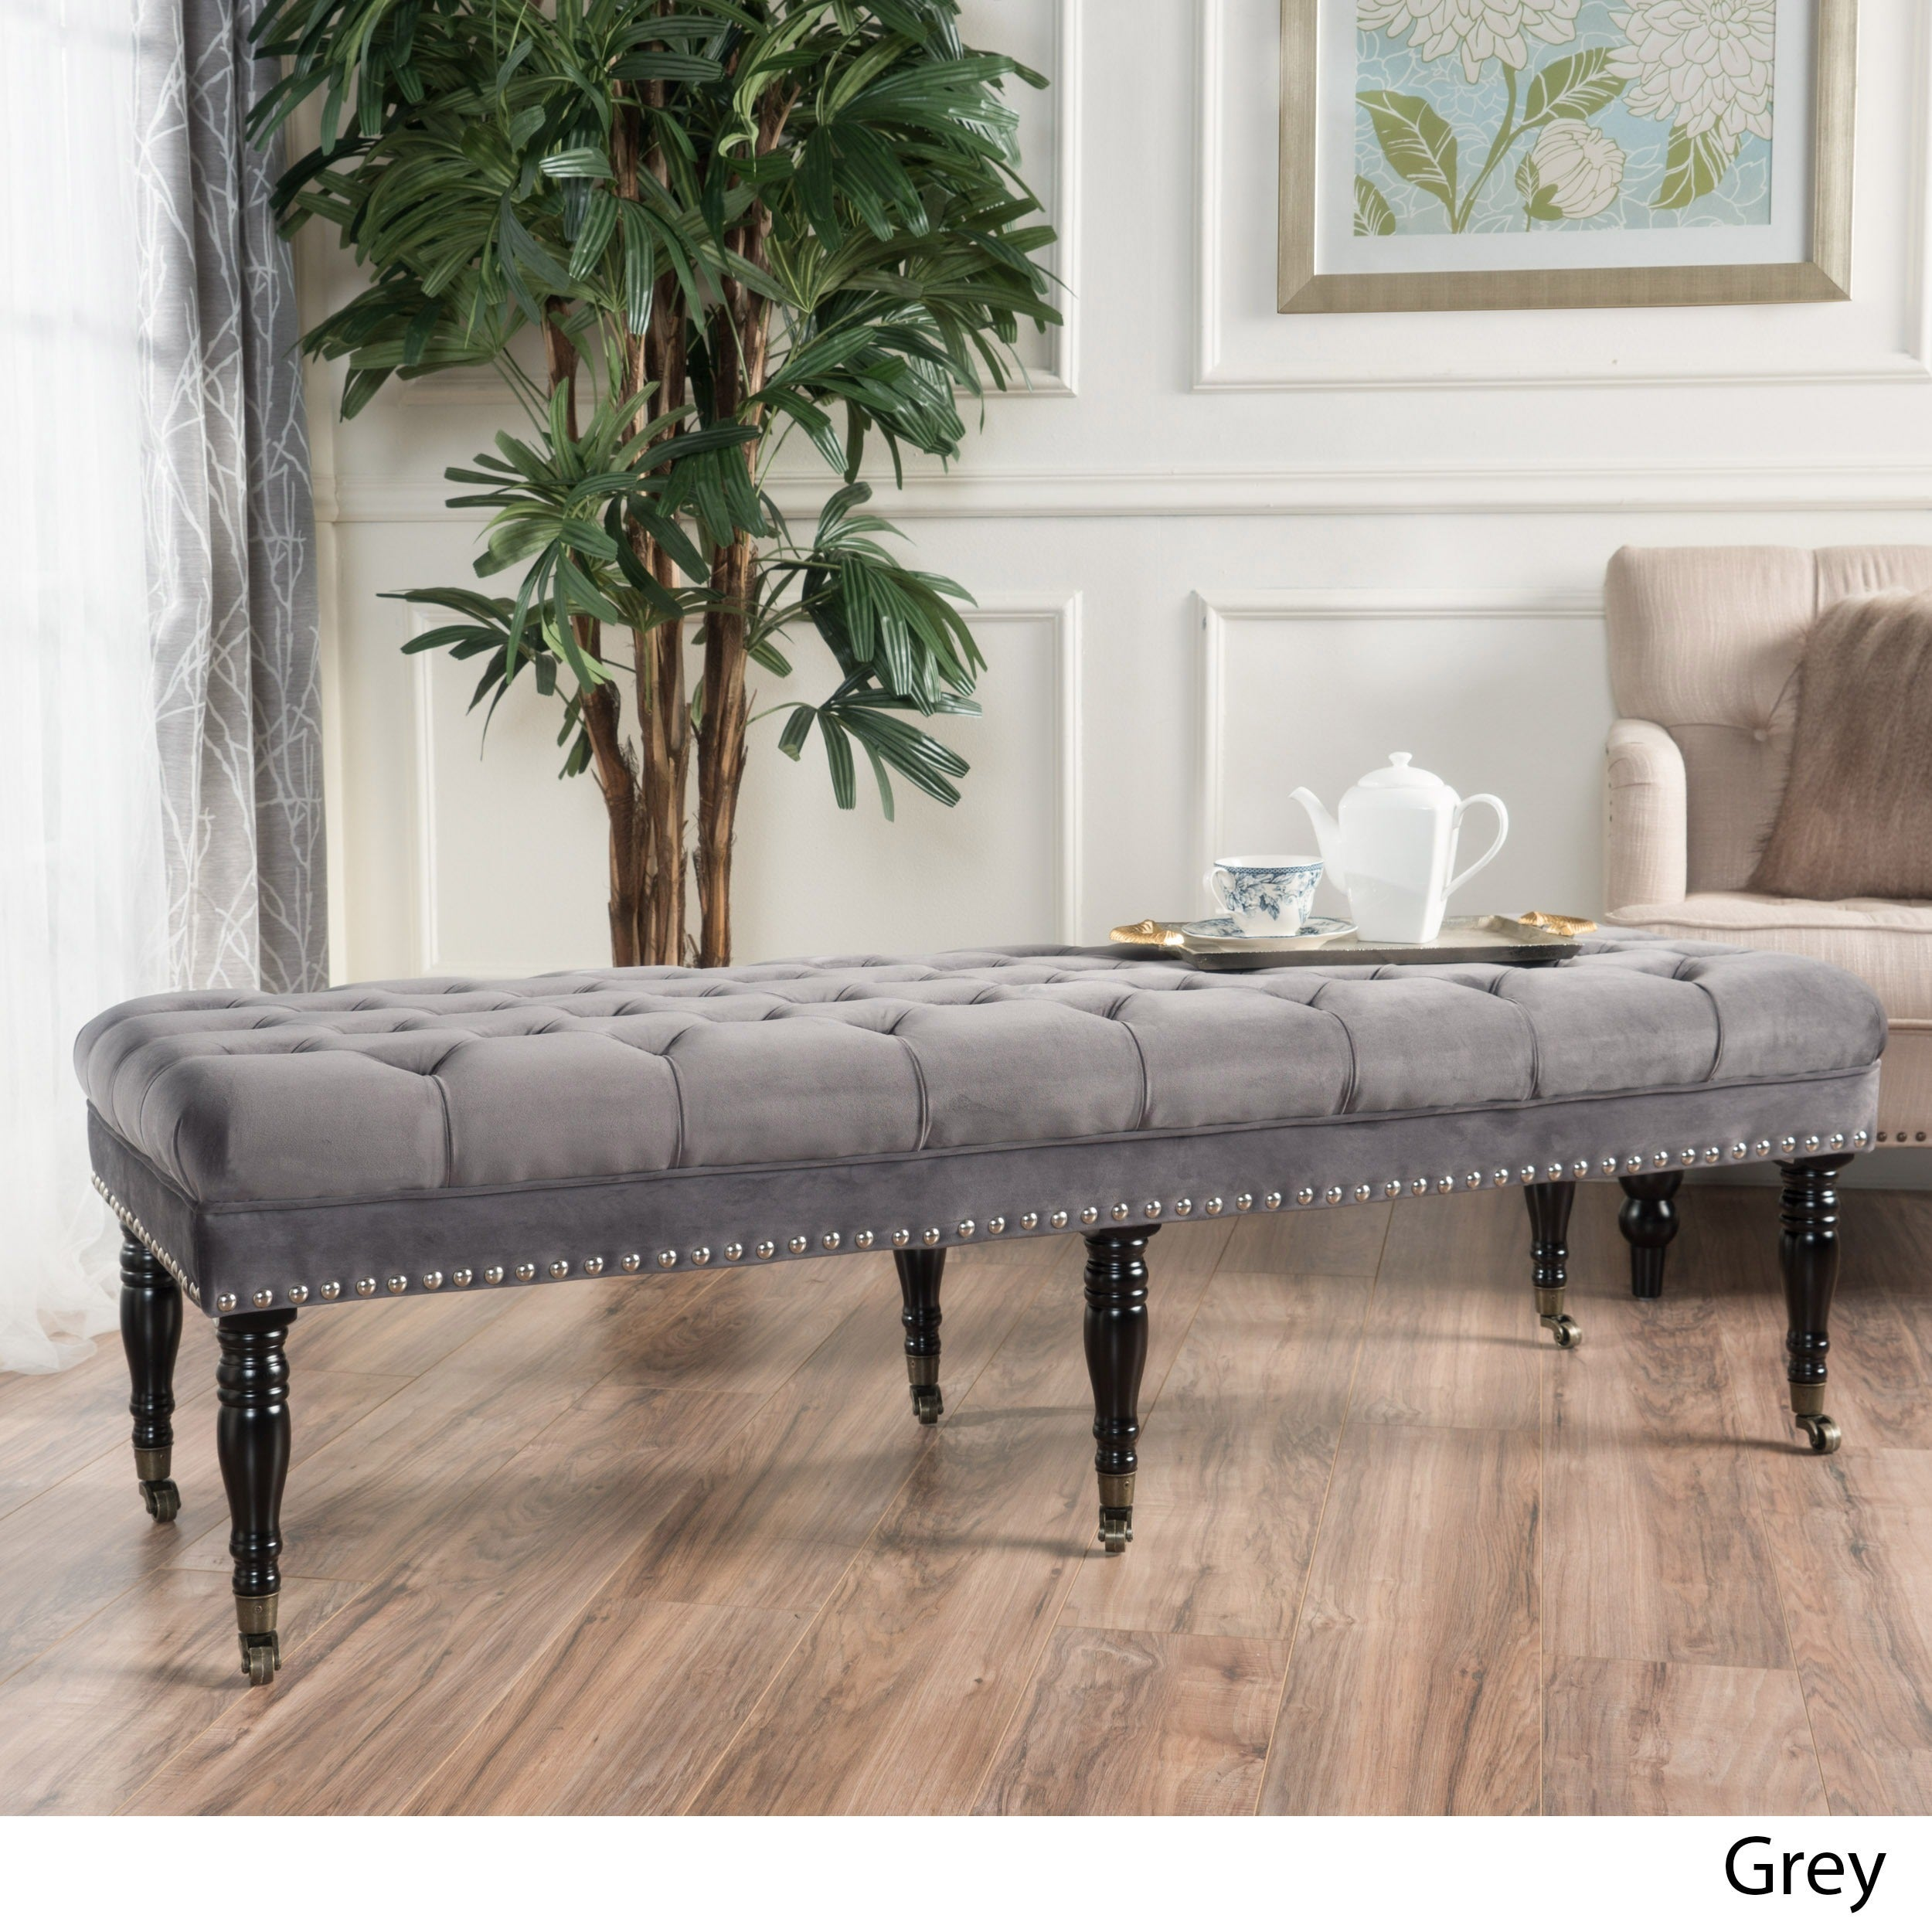 tufted on size cozy gray full interior contemporary benches ideas bedroom potted design plant elegant images dreaded bench furniture of with storage